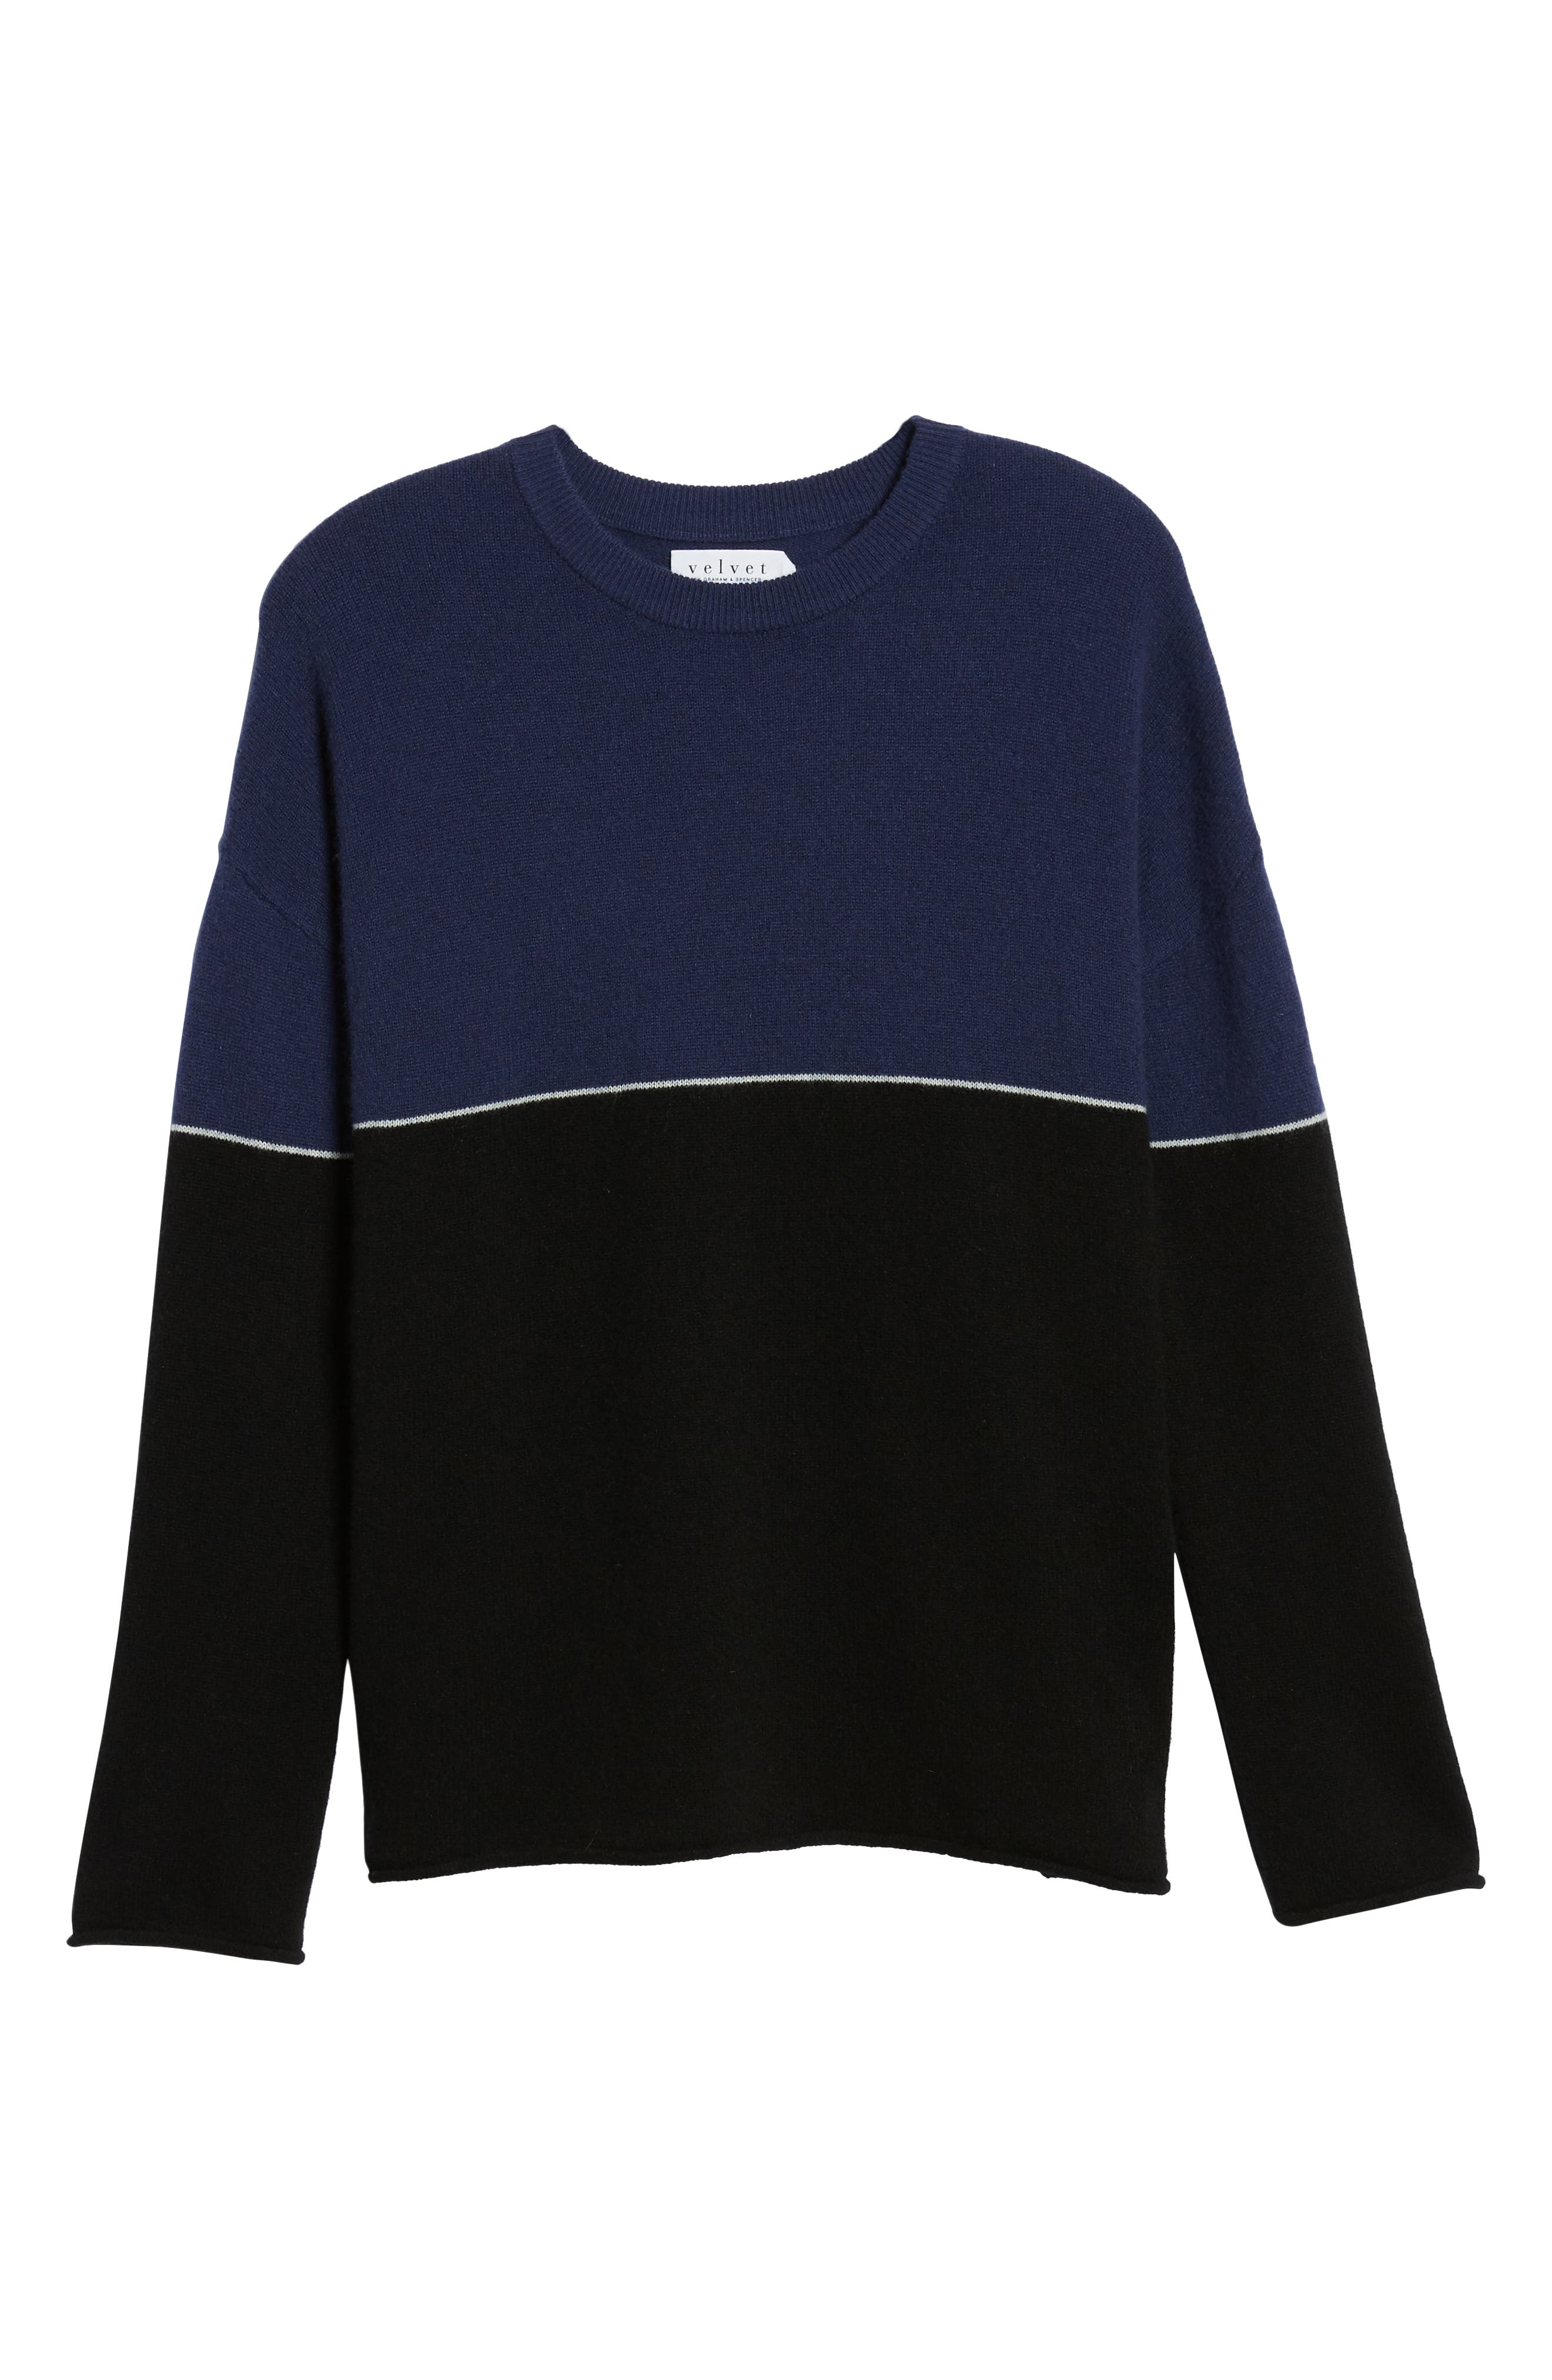 Cashmere Colorblock Sweater,                             Alternate thumbnail 6, color,                             001